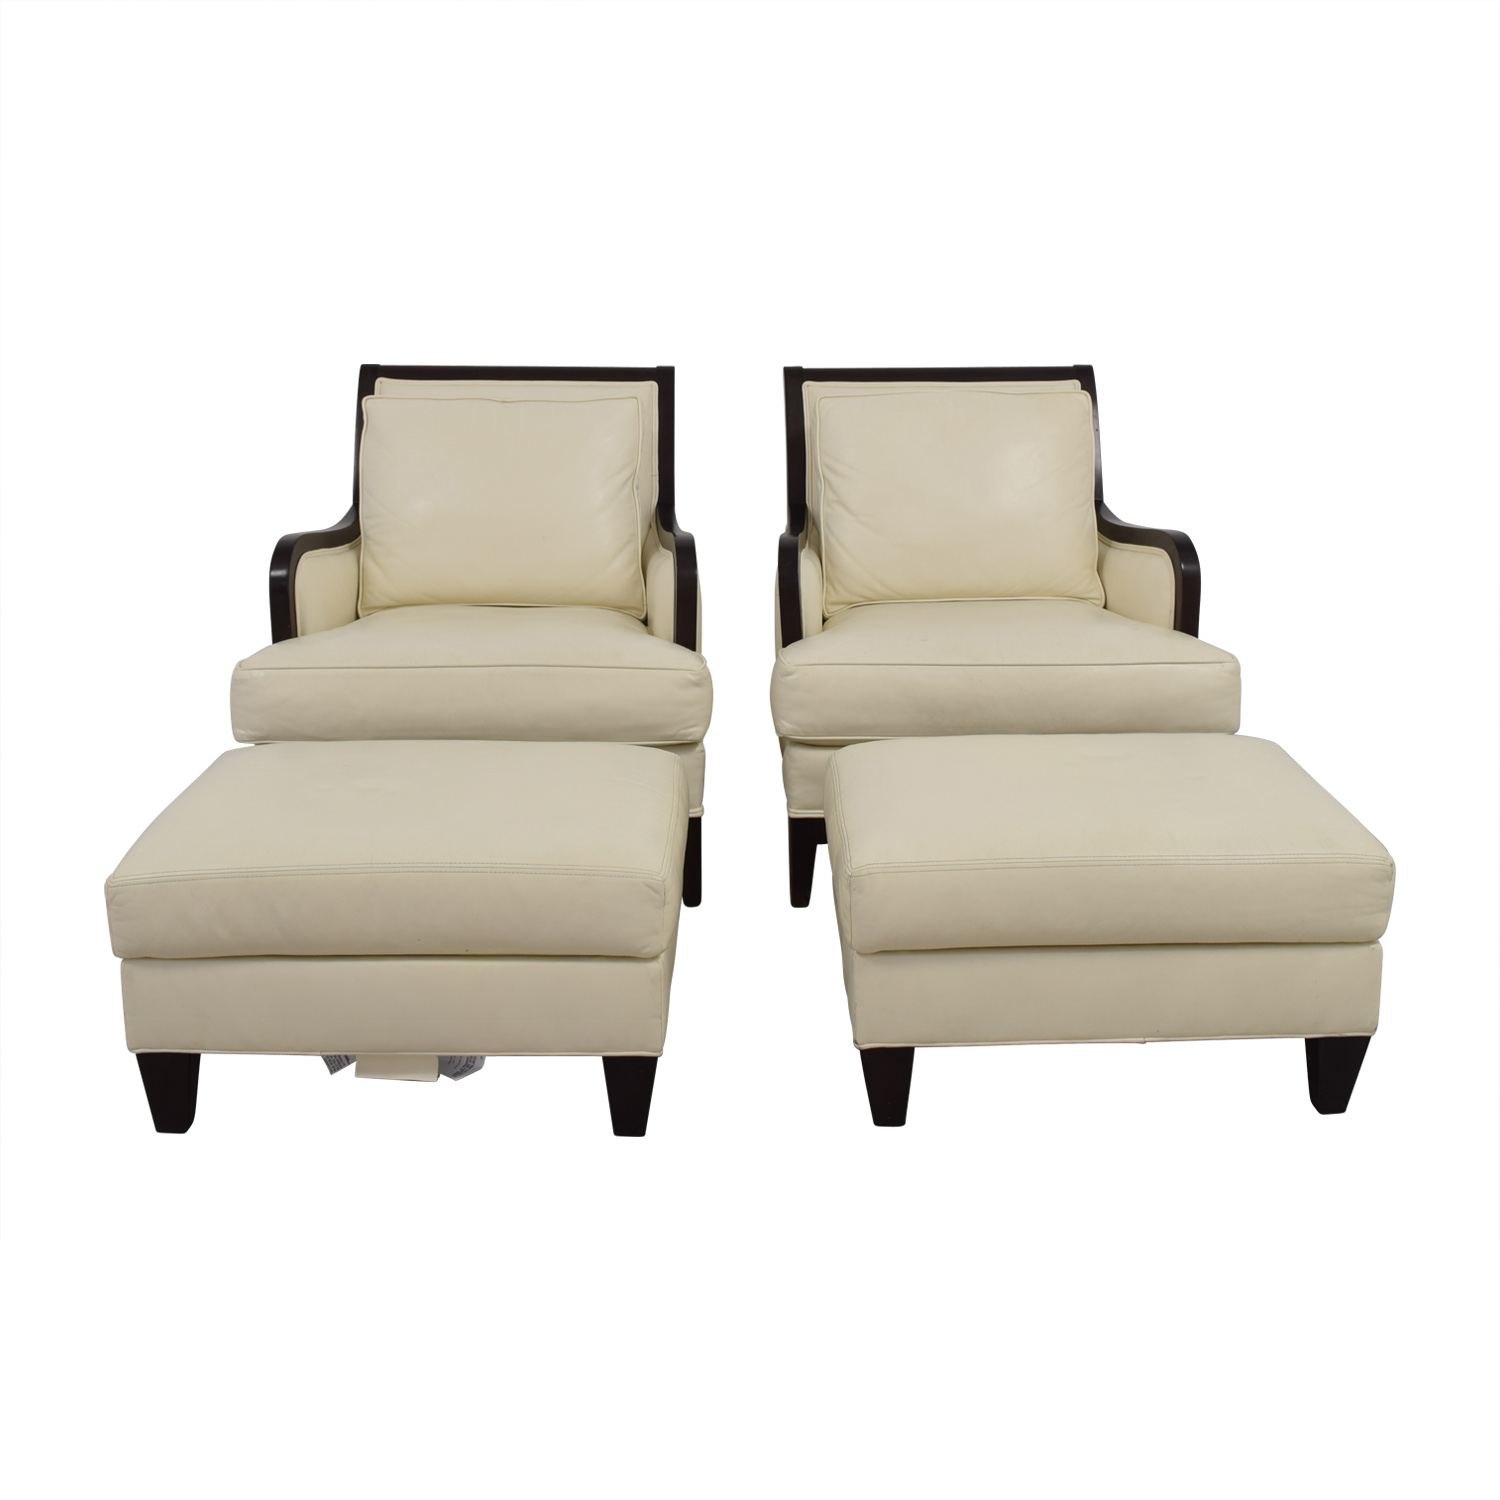 Ethan Allen Ethan Allen Palma Ivory Leather Chairs with Ottomans Accent Chairs